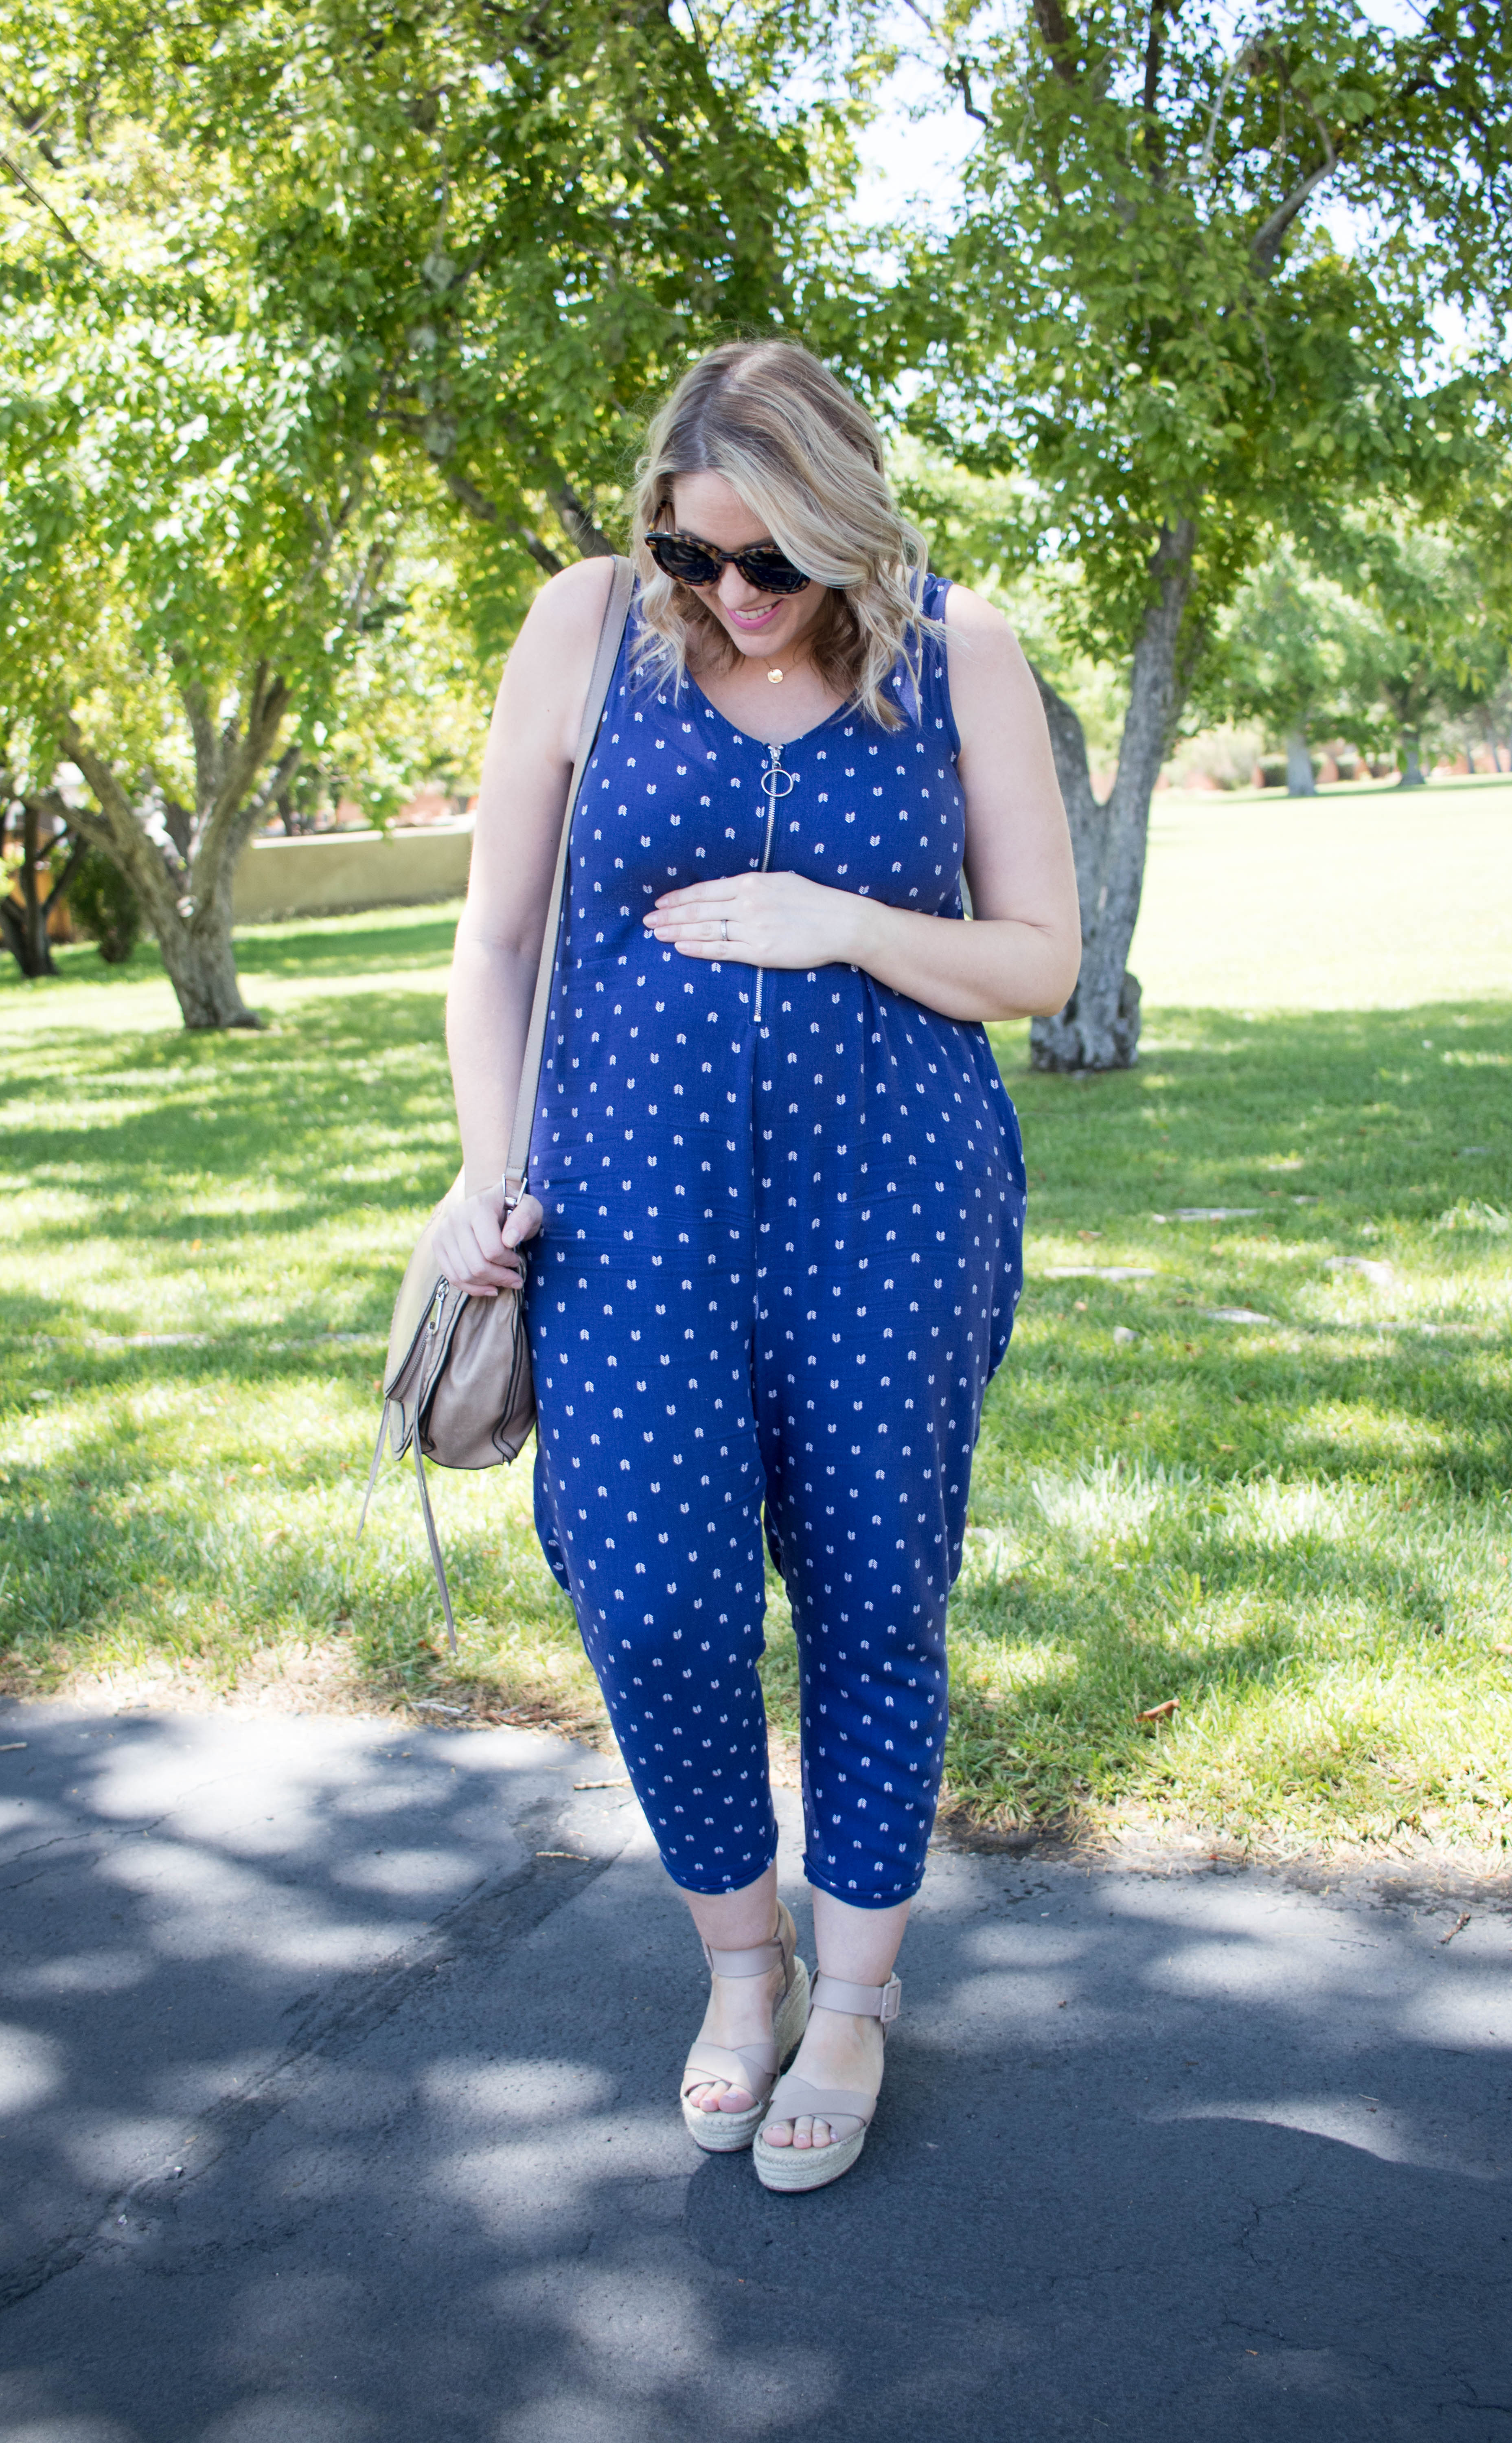 ingrid and isabel maternity jumpsuit #jumpsuit #pregnancystyle #maternityfashion